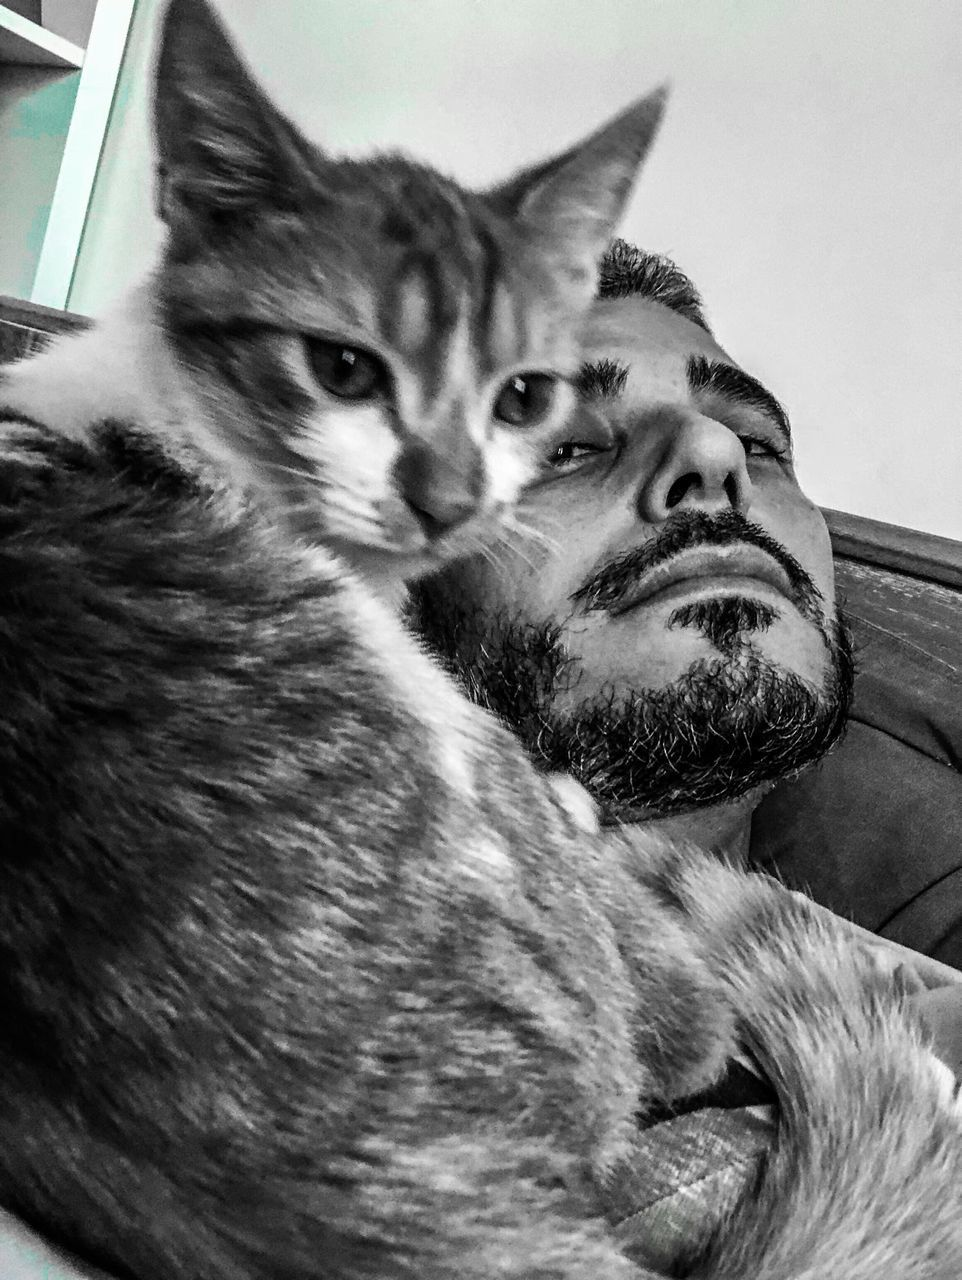 mammal, domestic animals, pets, domestic, one animal, real people, vertebrate, one person, portrait, lifestyles, beard, facial hair, home interior, looking at camera, cat, relaxation, leisure activity, pet owner